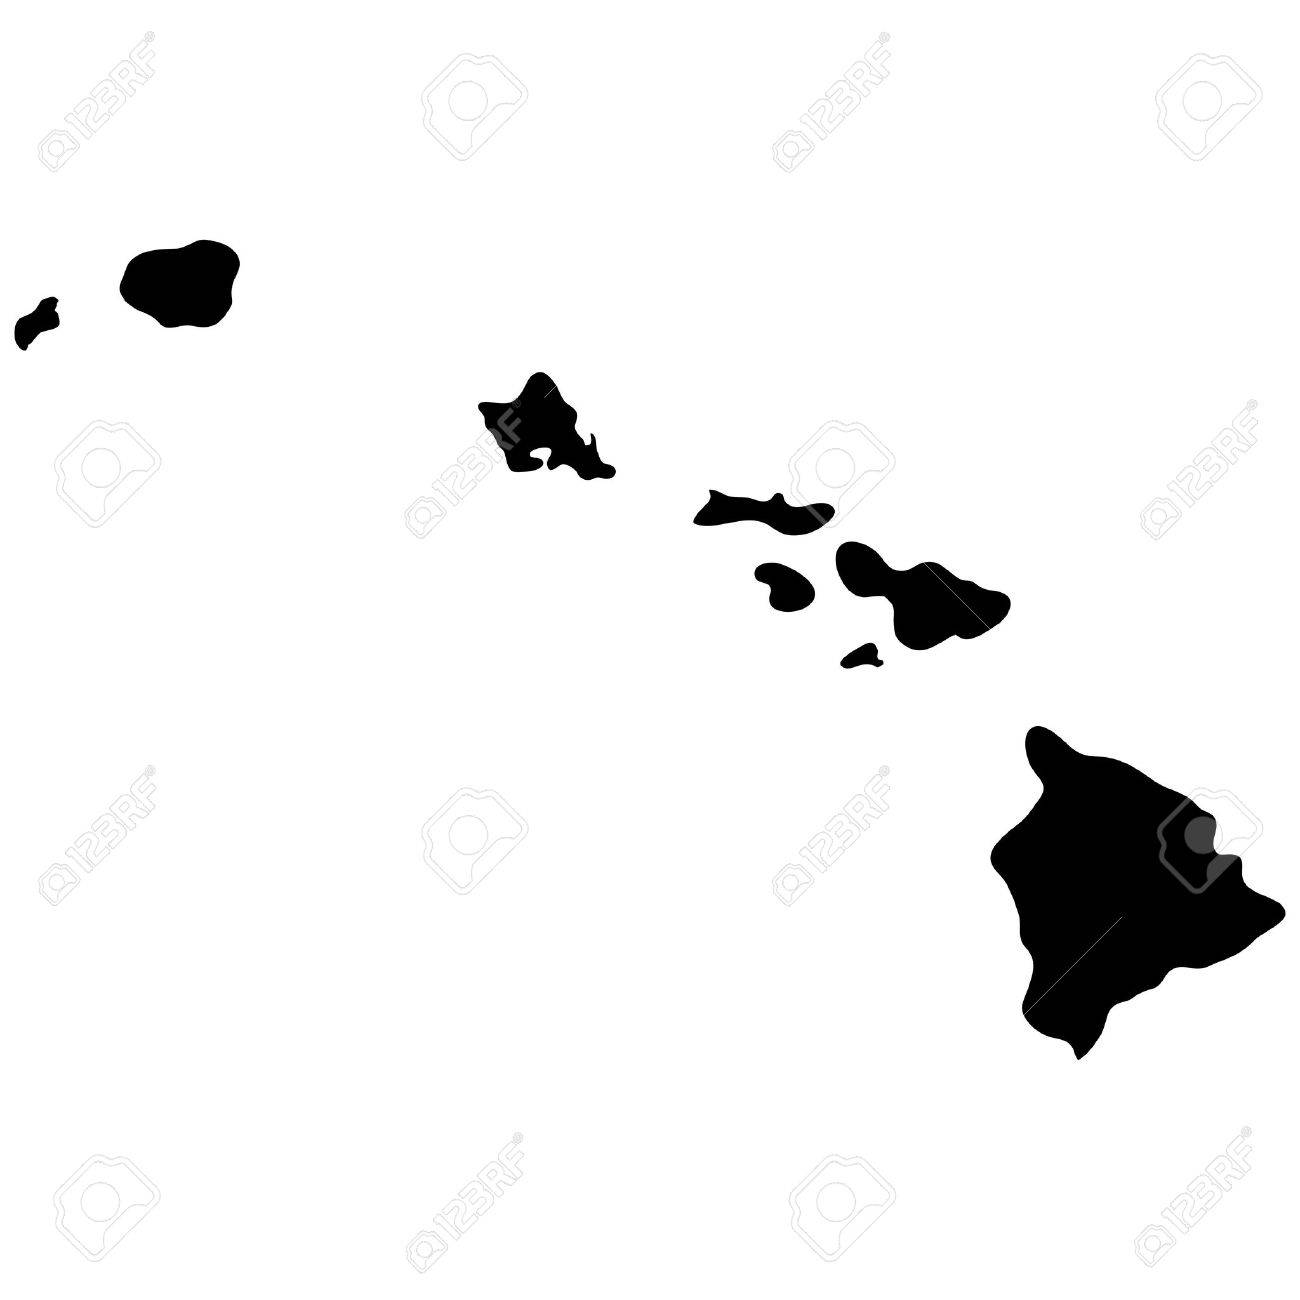 Map Of The U S State Of Hawaii Stock Vector 35052533